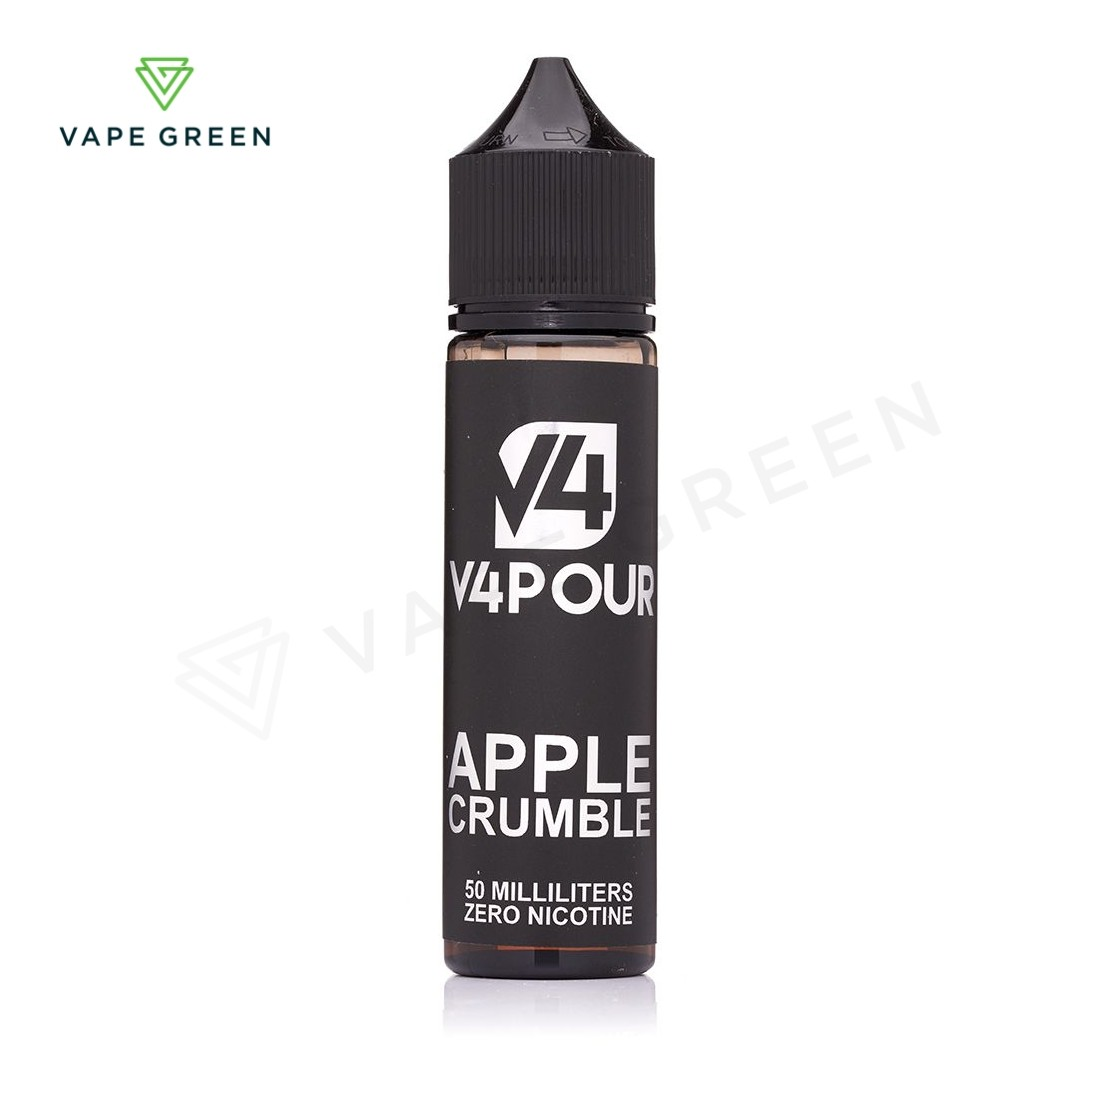 Apple Crumble E-liquid by V4 Vapour 50ml